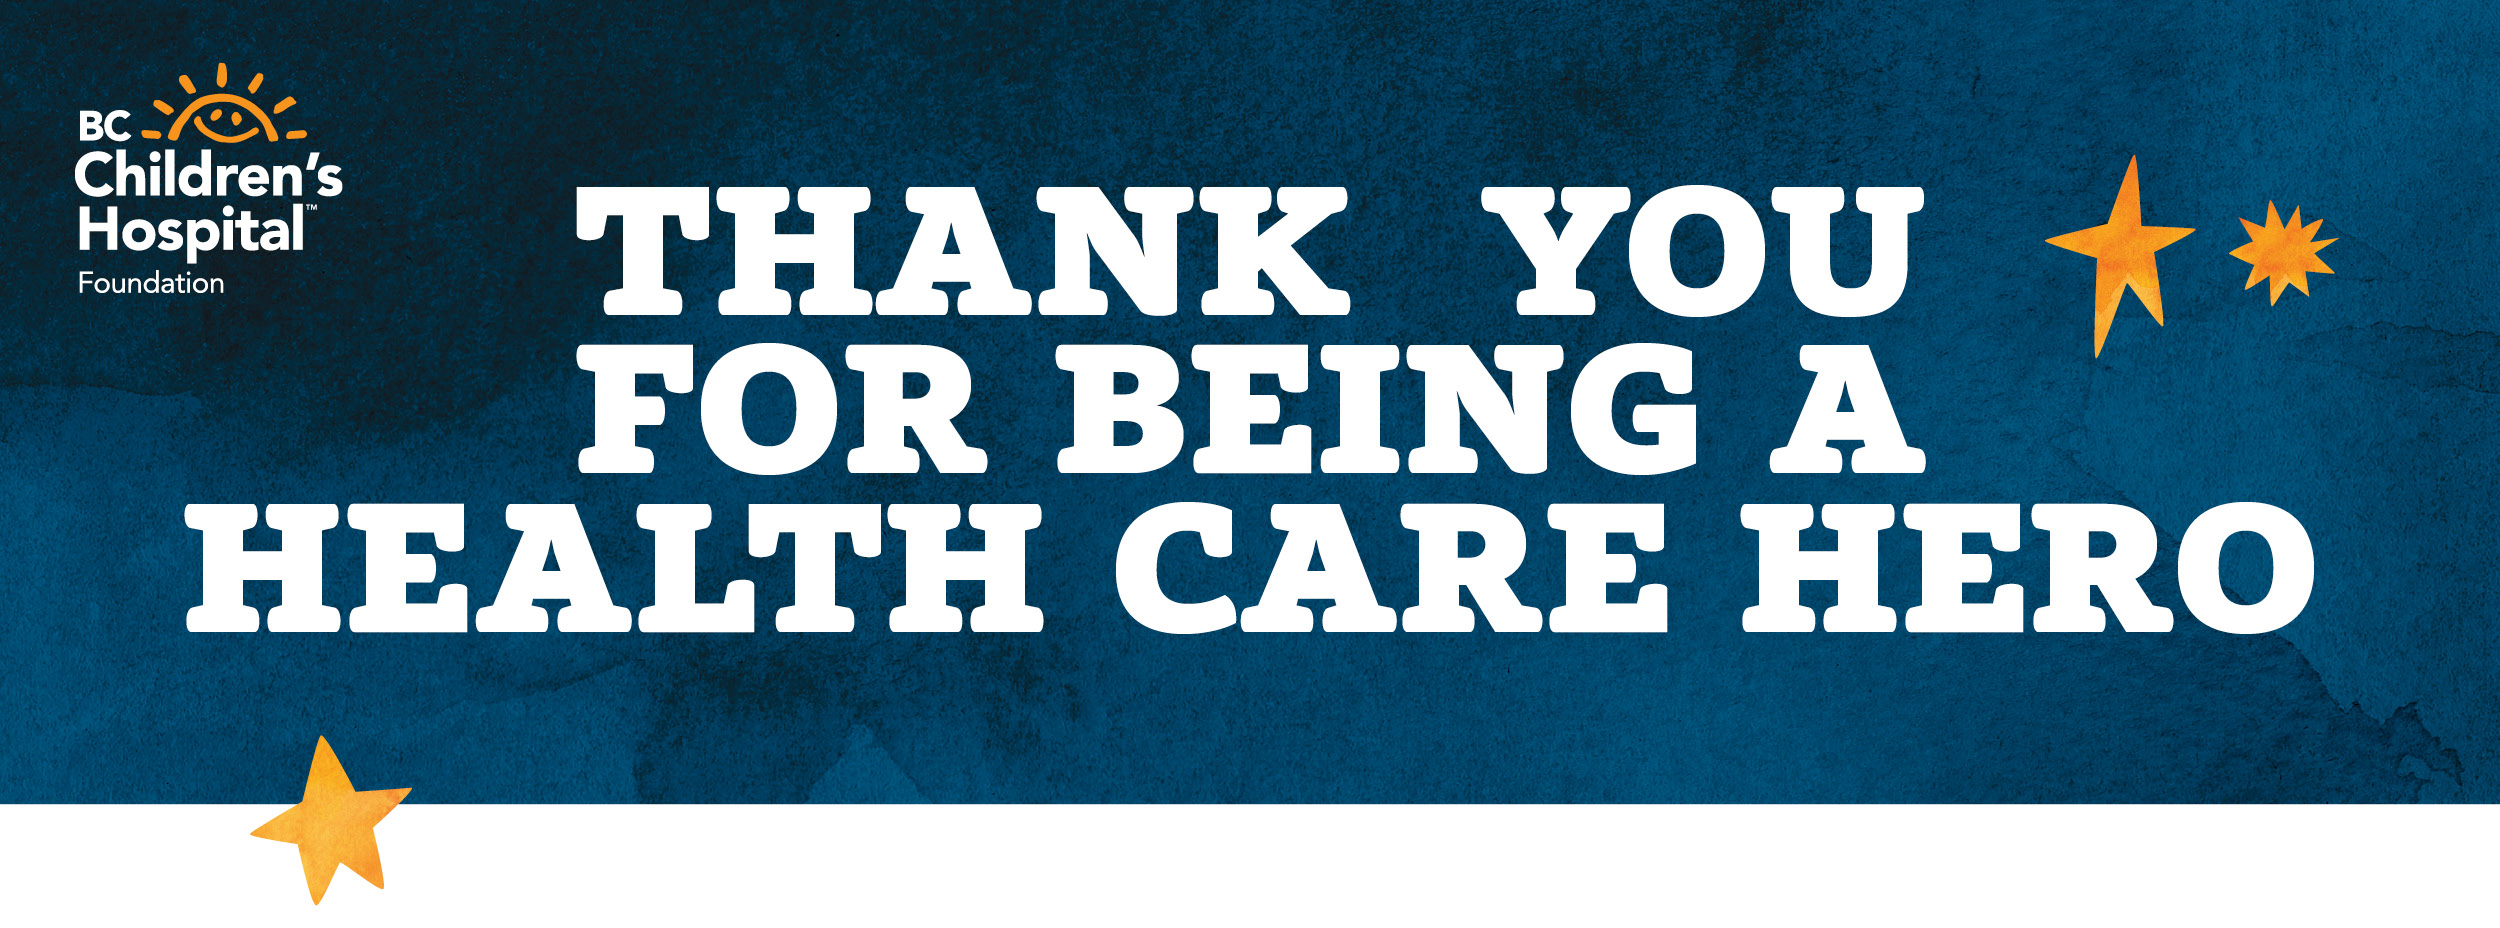 Thank you for being a health care hero